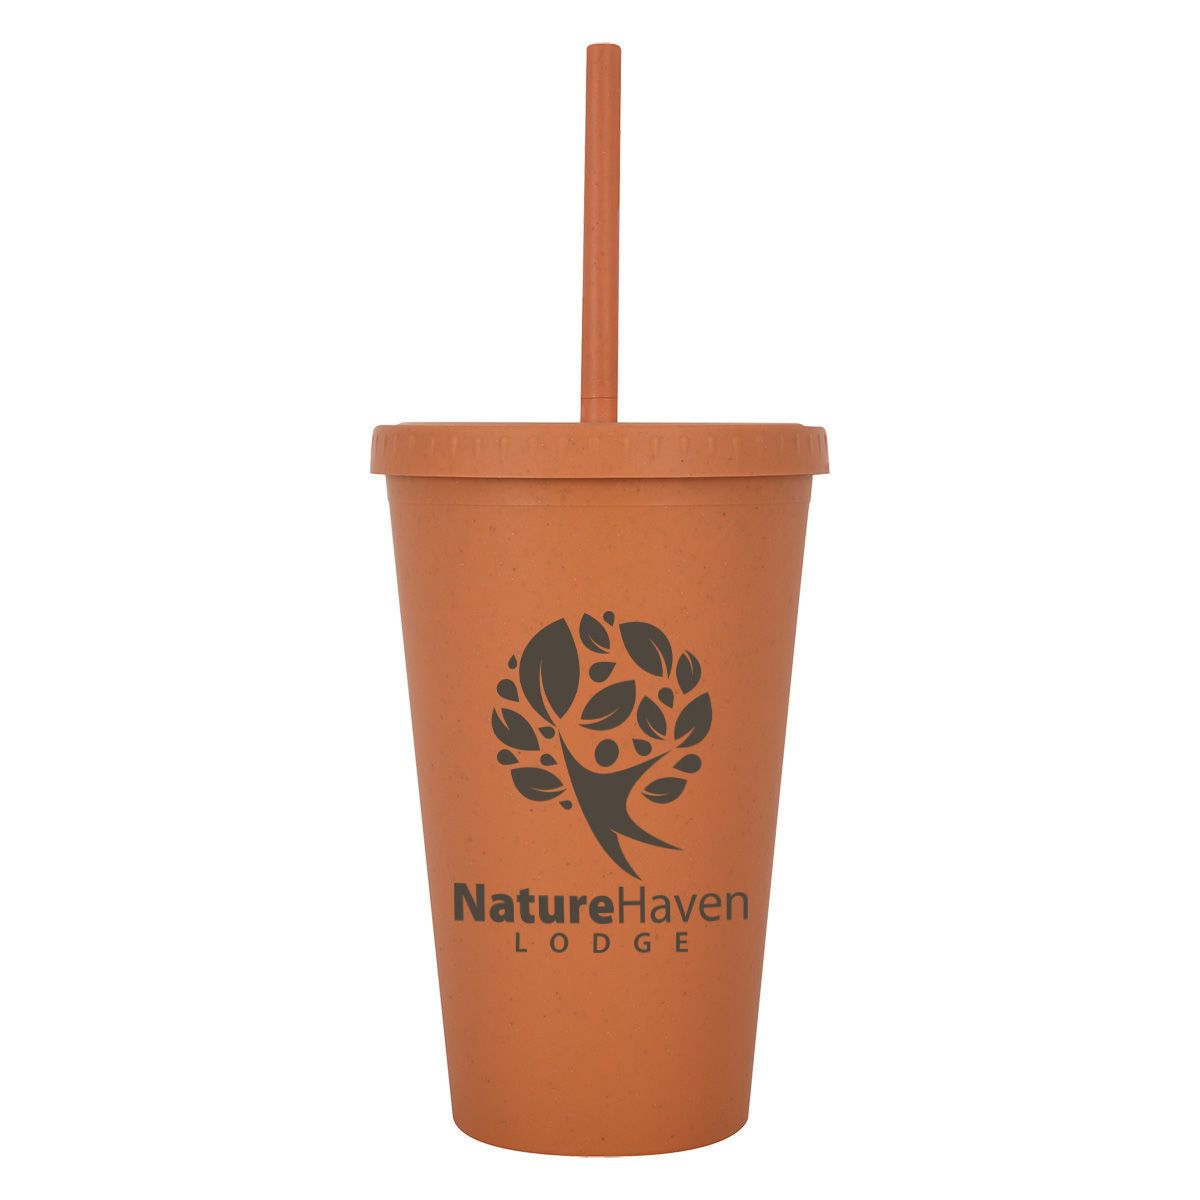 Wheat Straw Fiber Cup and Straw